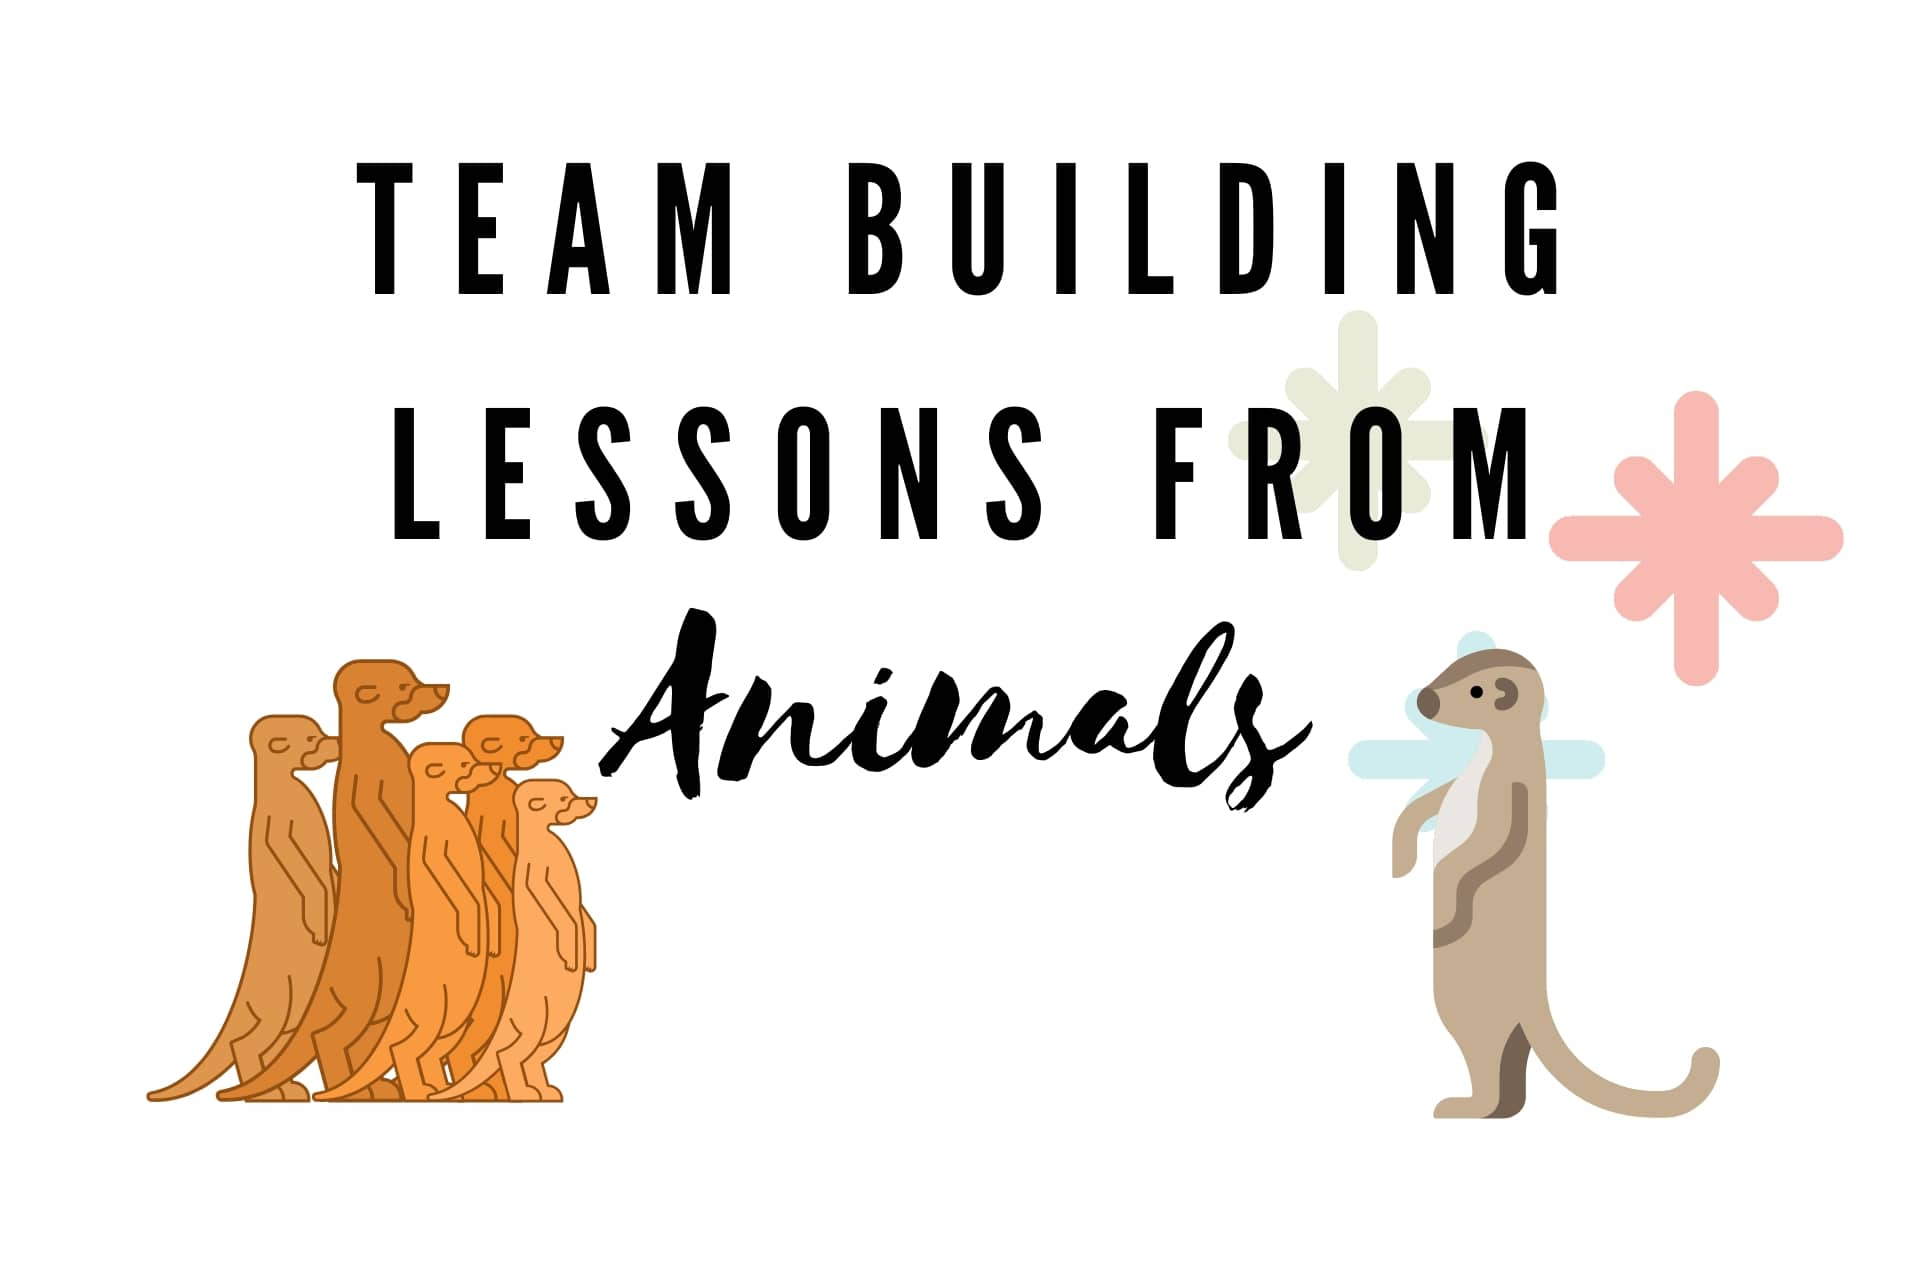 7 Team Building Lessons We Can Learn From Animals